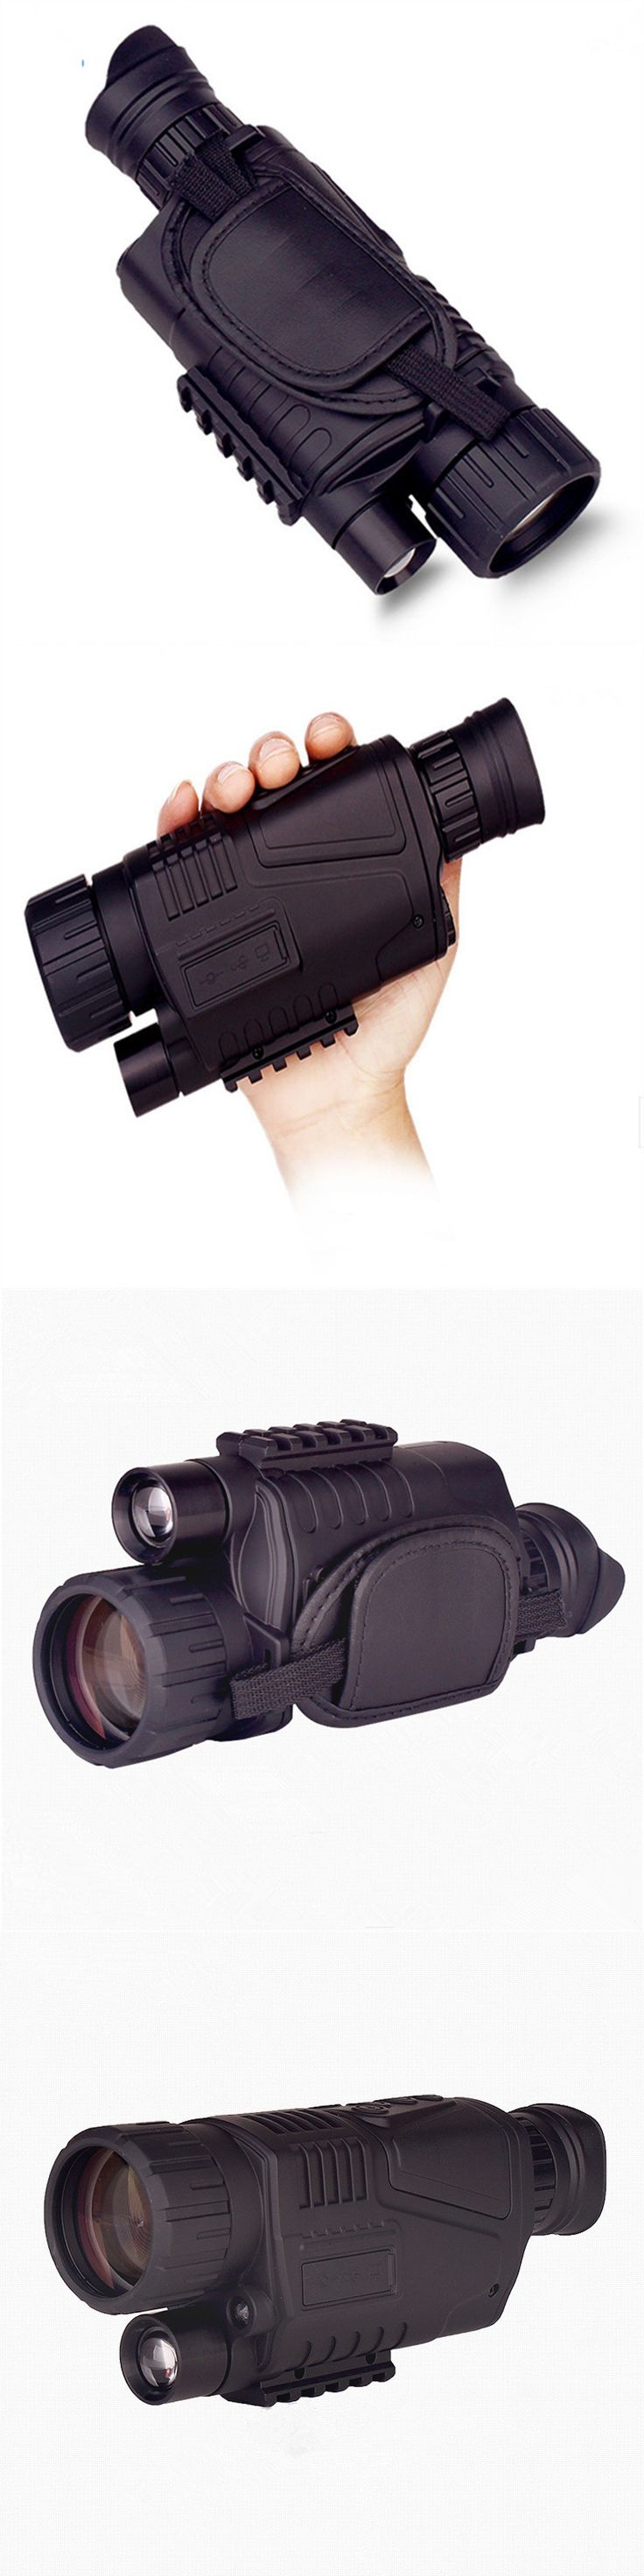 Professional infrared night vision monocular camping hunting night vision goggles video camera telescope Support Drop shipping